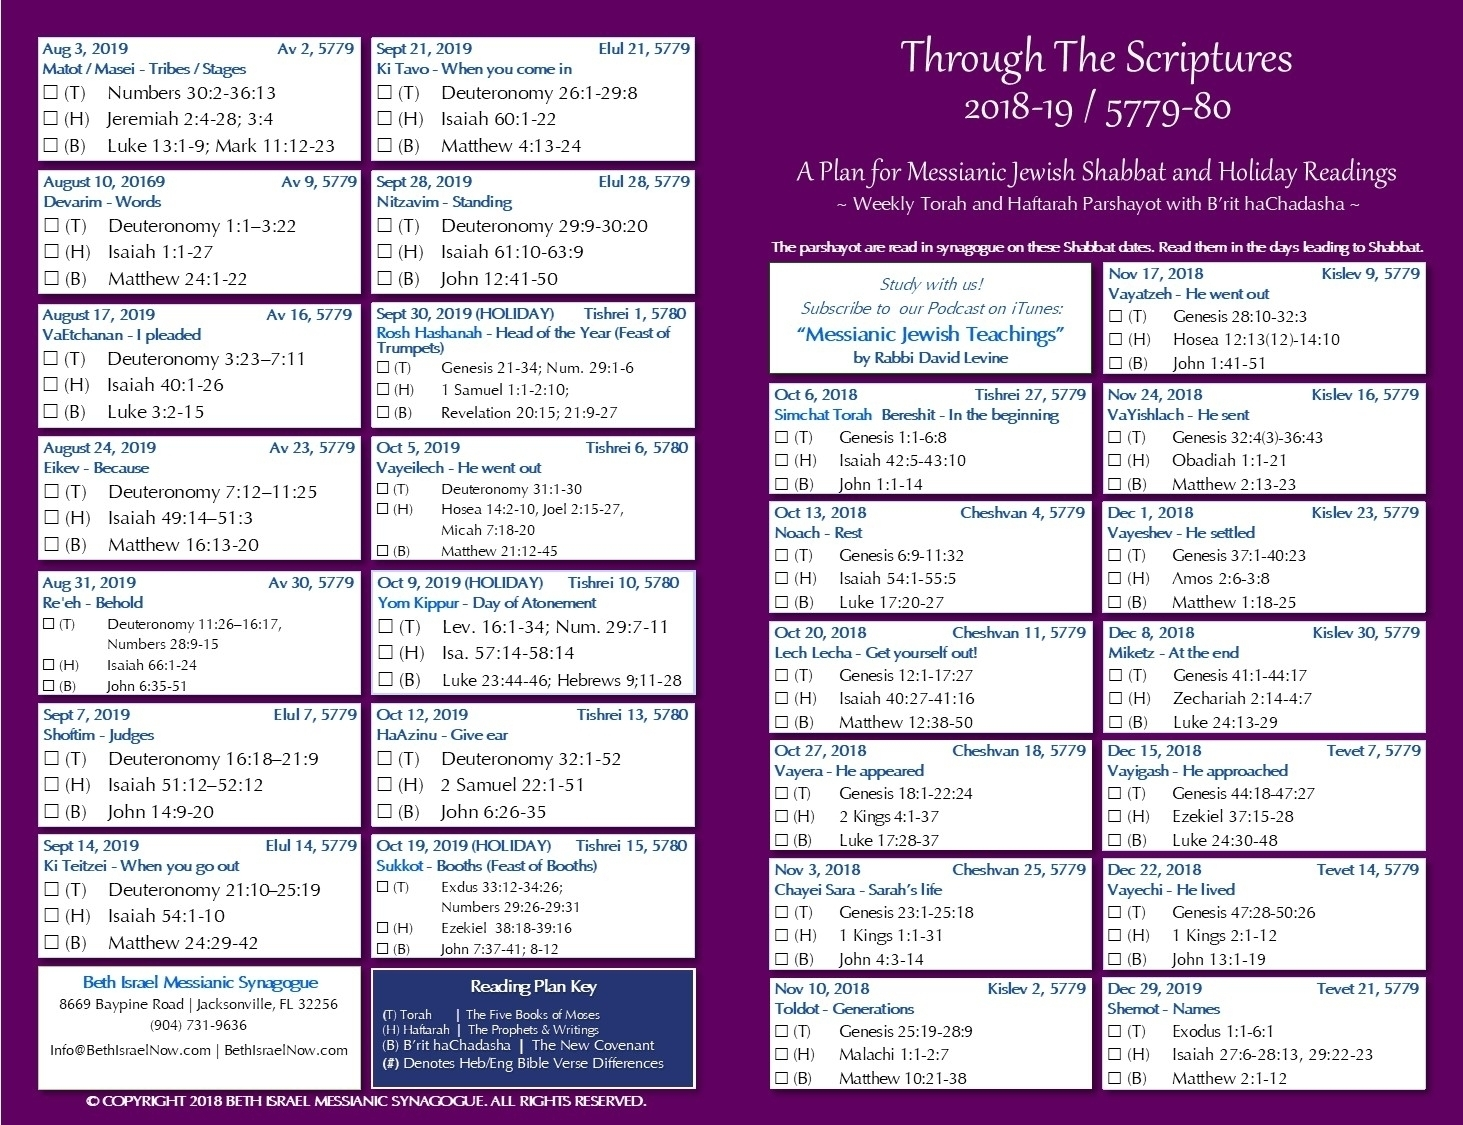 Weekly Torah Parsha Calendar For 2019/2020 - Calendar with Weekly Torah Reading Portions Calendar